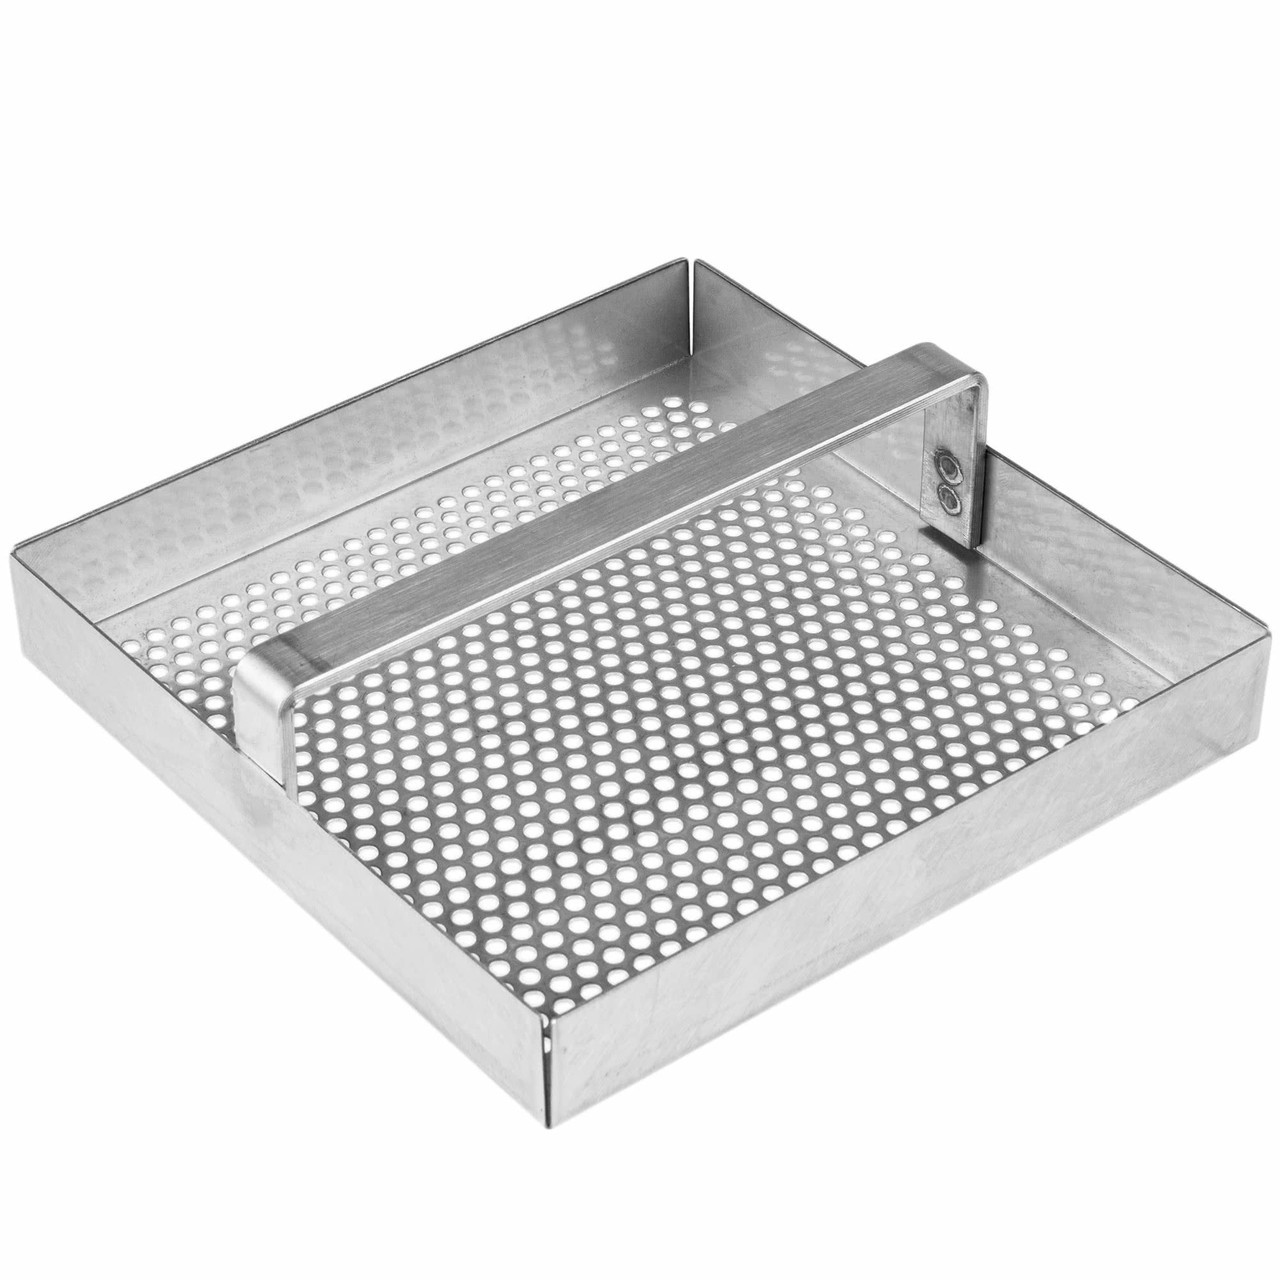 5 3 4 Quot Drain Strainer With 3 4 Quot Lip Drain Net Technologies